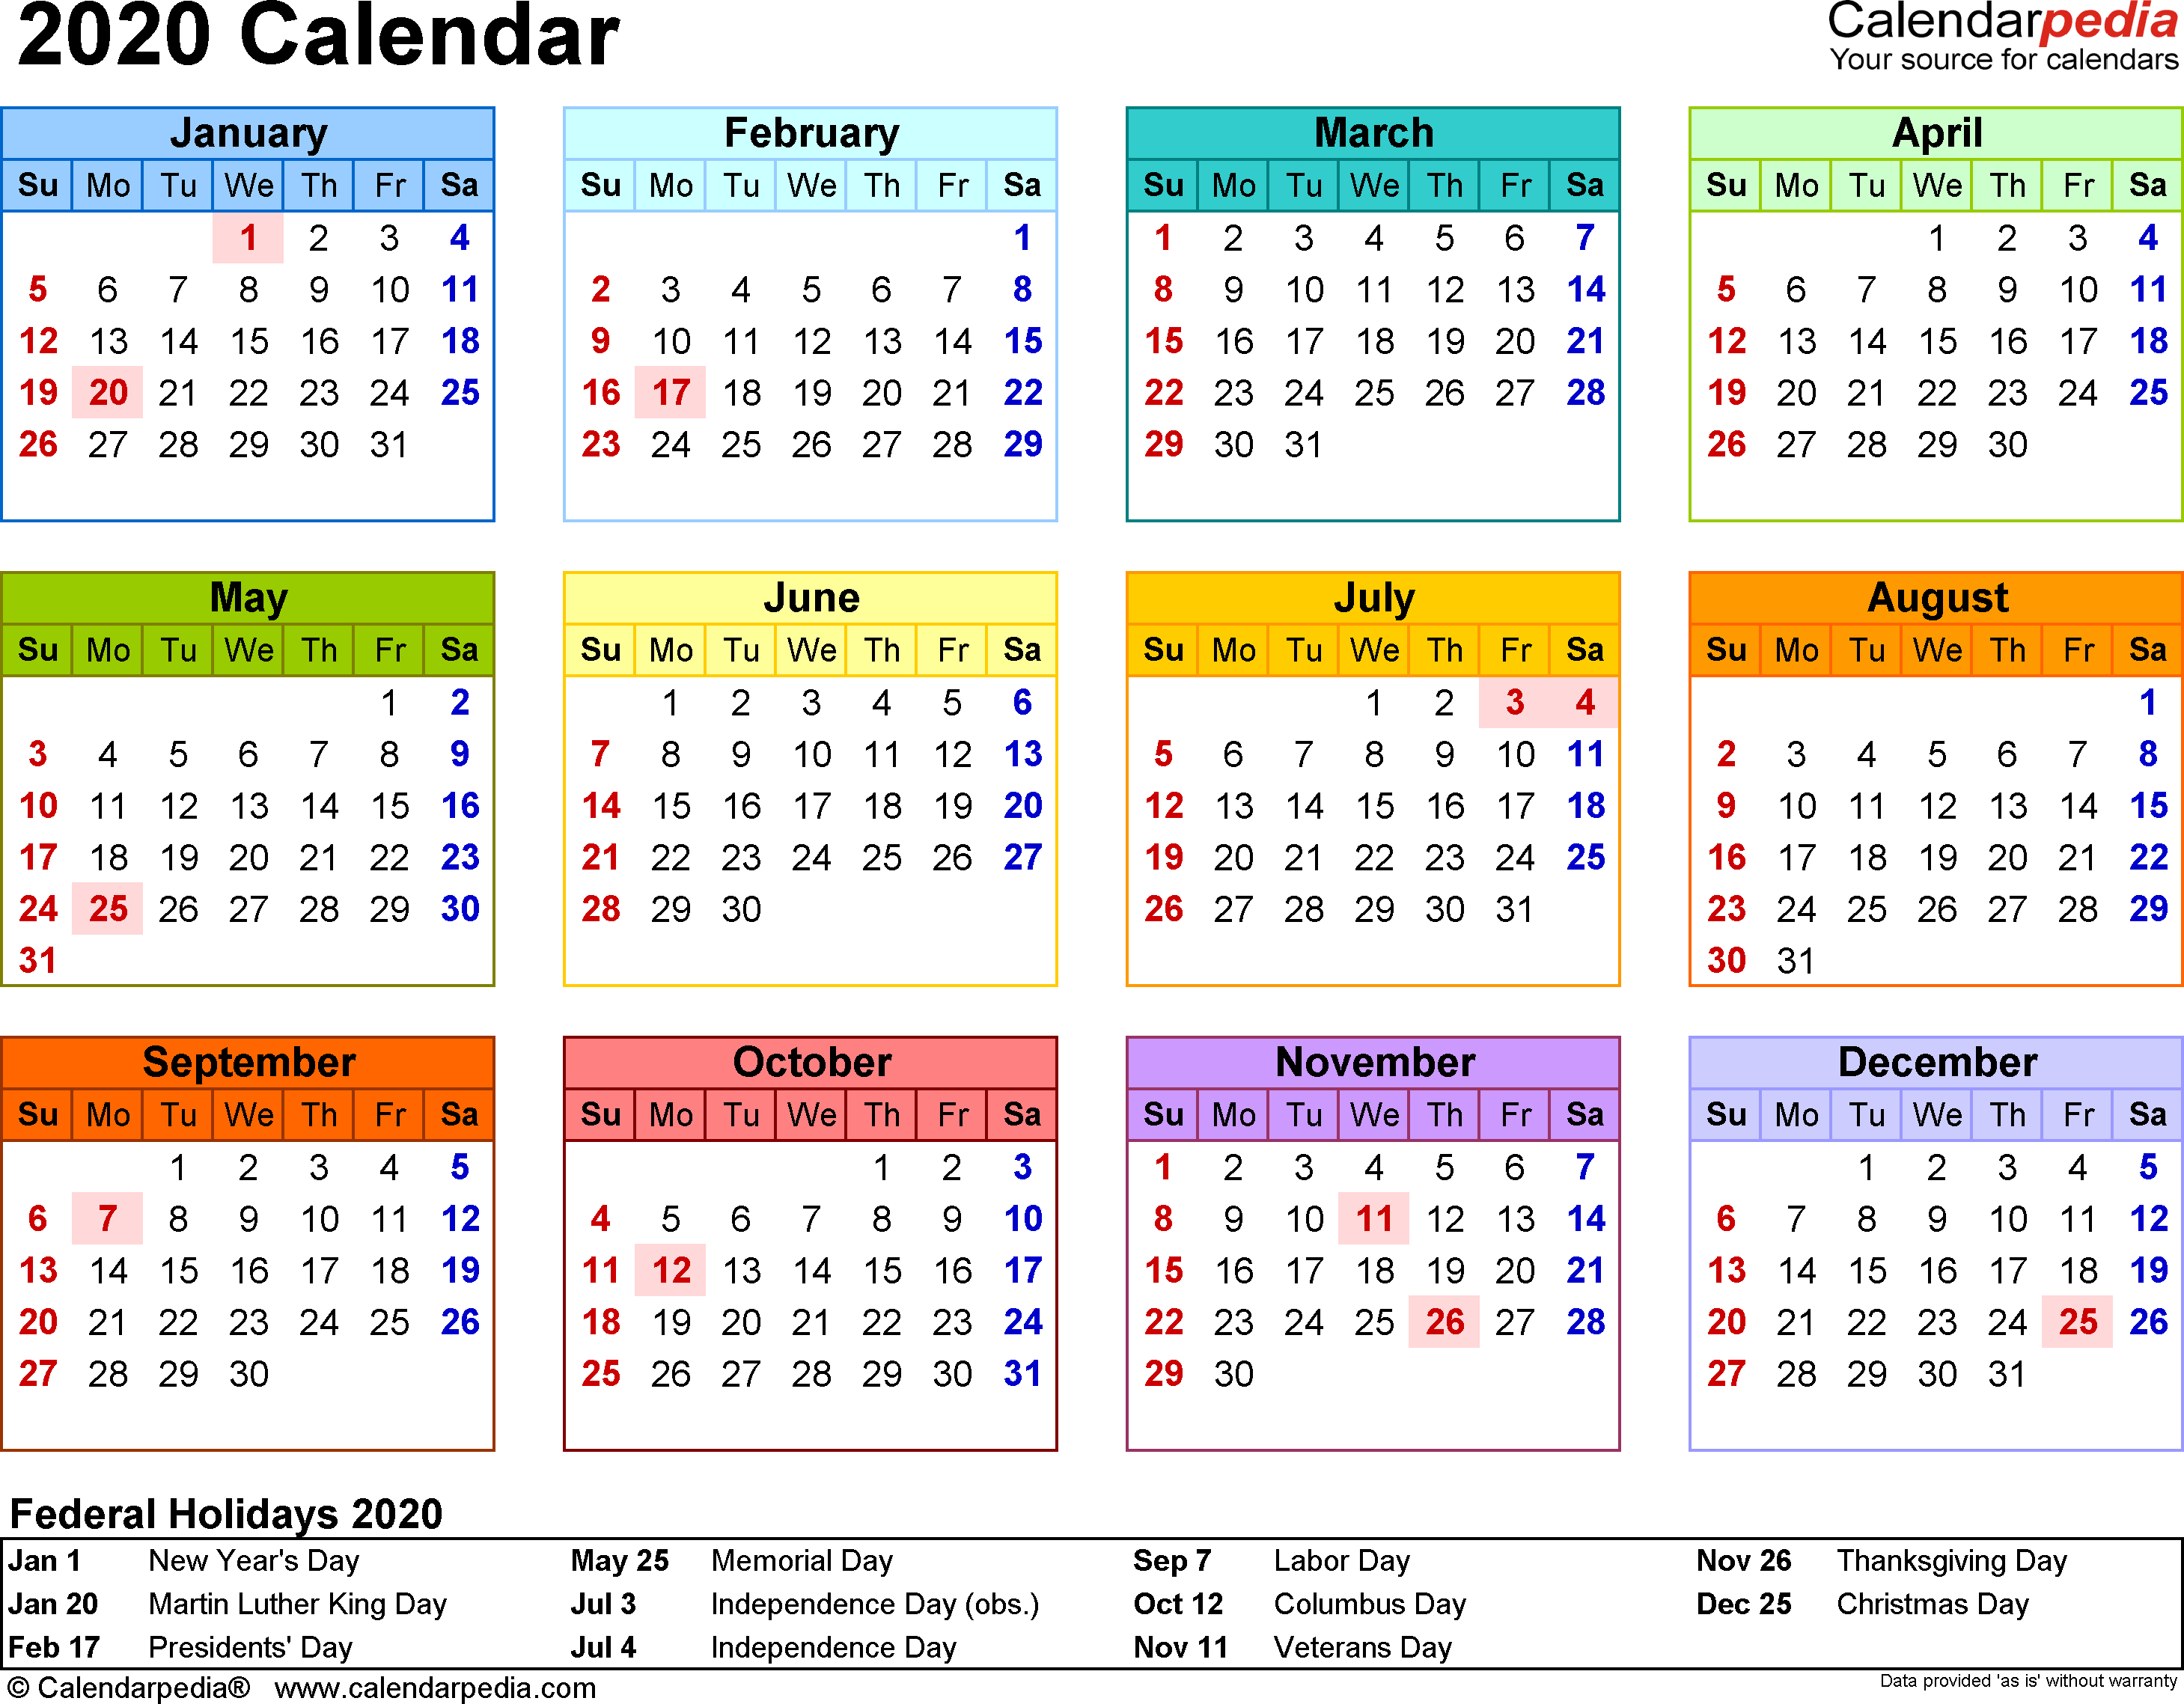 2020 Calendar  Free Printable Microsoft Word Templates in School Calendar 2020 South Africa Pdf